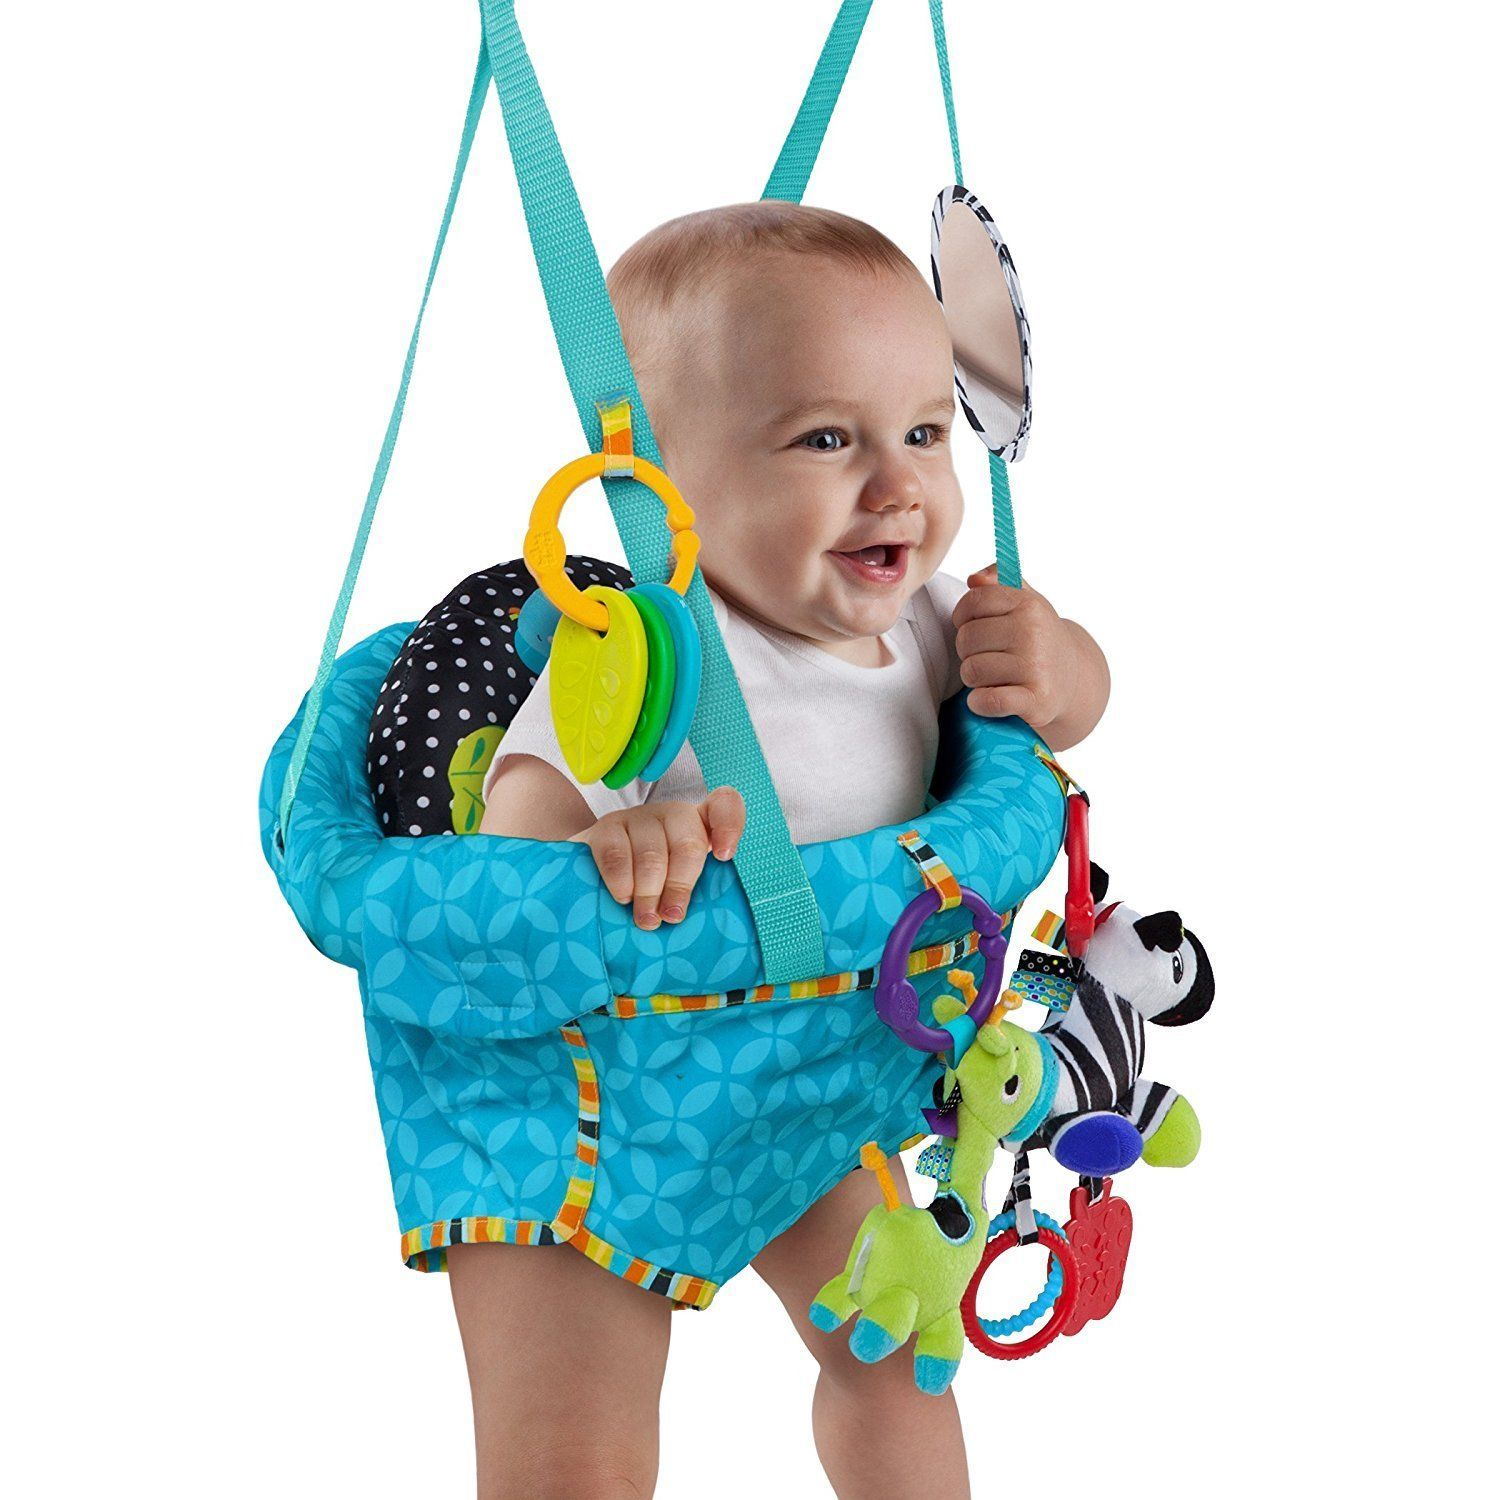 Pin On Baby Gear